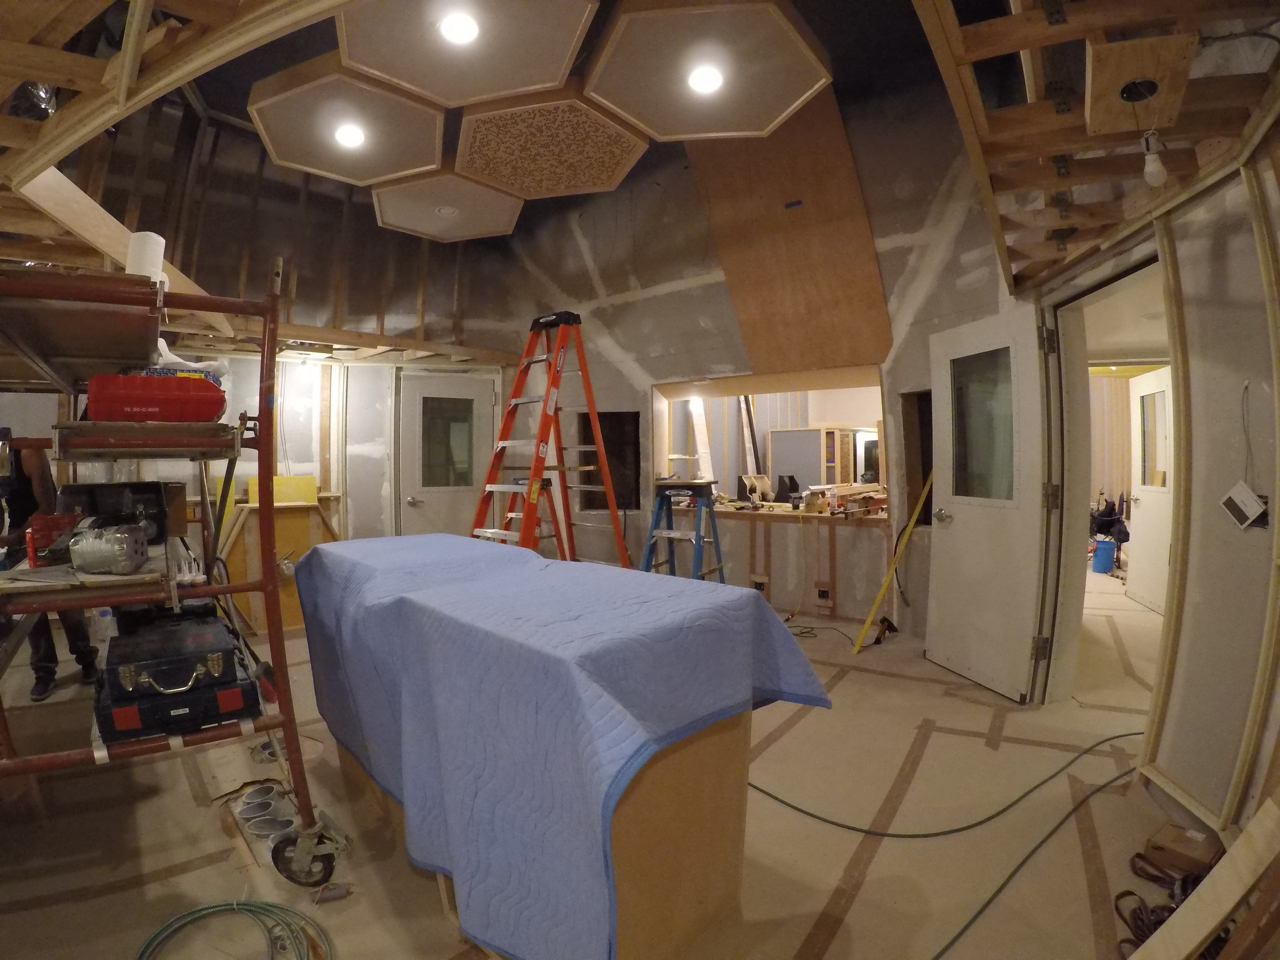 The cloud in control room 1 is missing two pieces, they were left off to allow room to work while installing the birds-eye maple front wall.